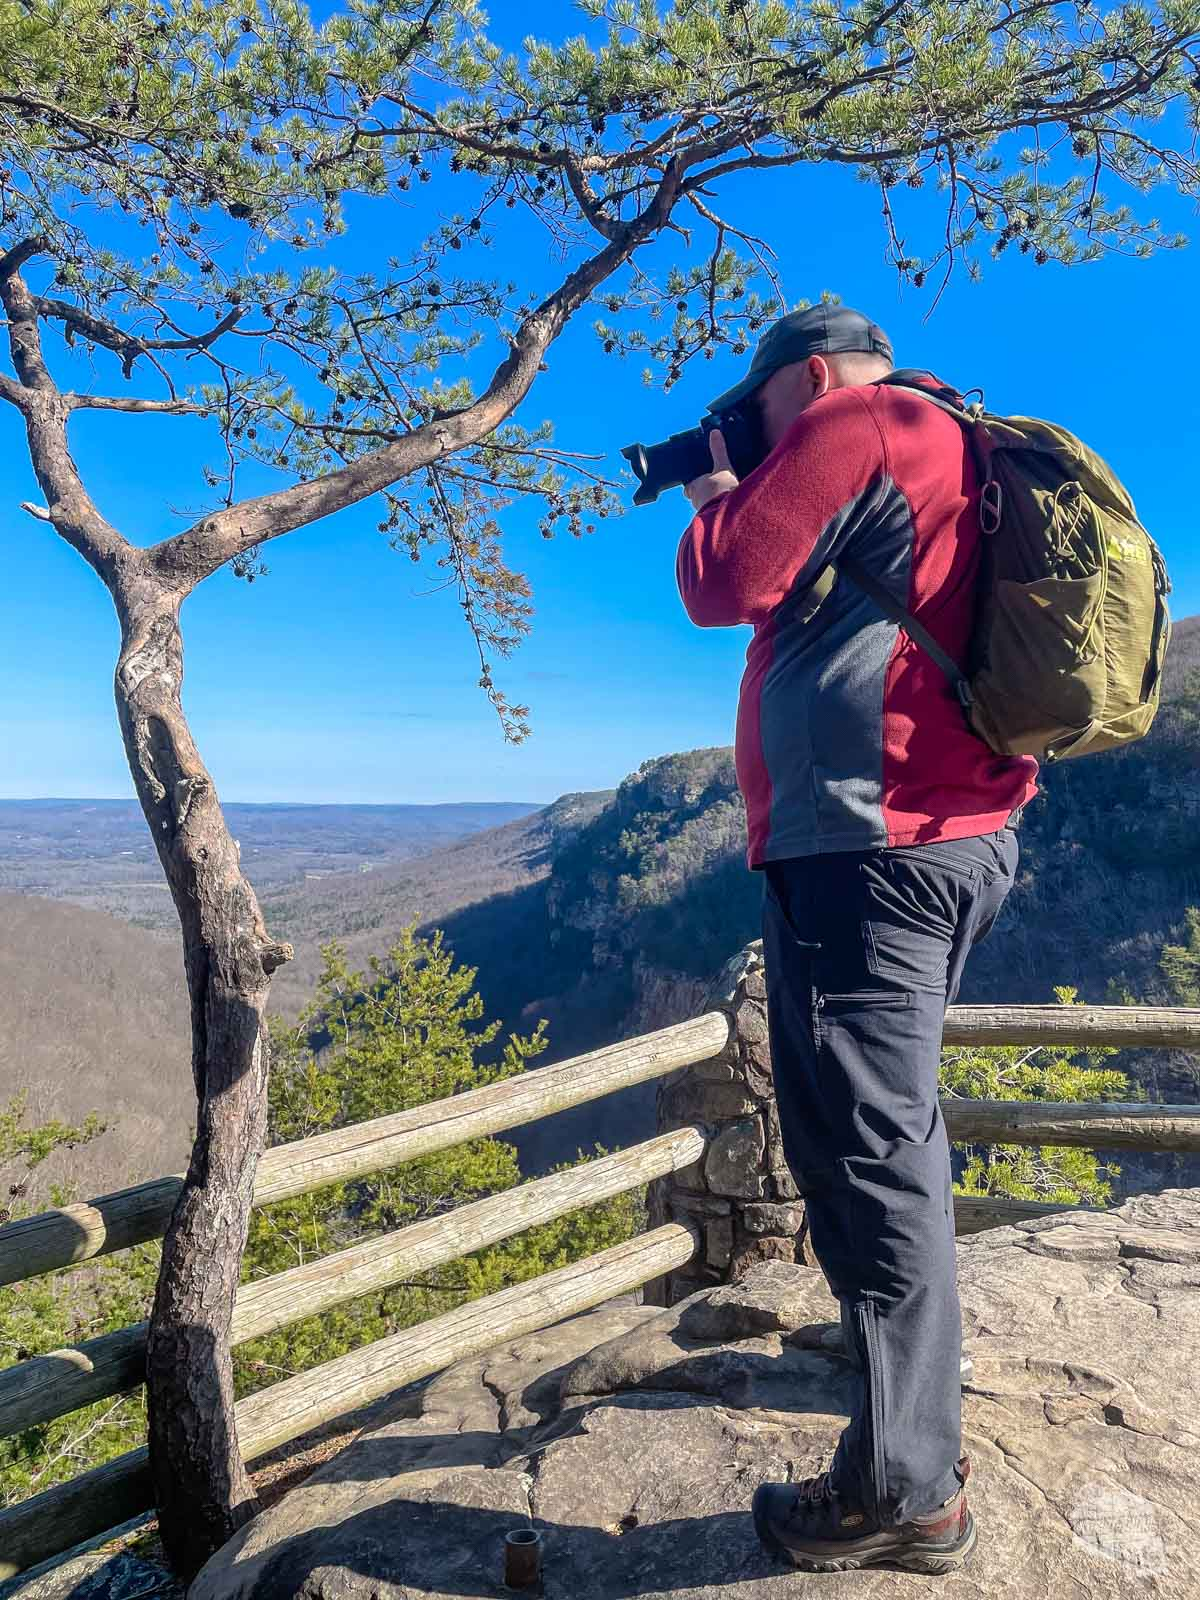 Grant taking a picture in Cloudland Canyon. He's wearing KUHL Klash pants, which are great for hiking in cold weather.